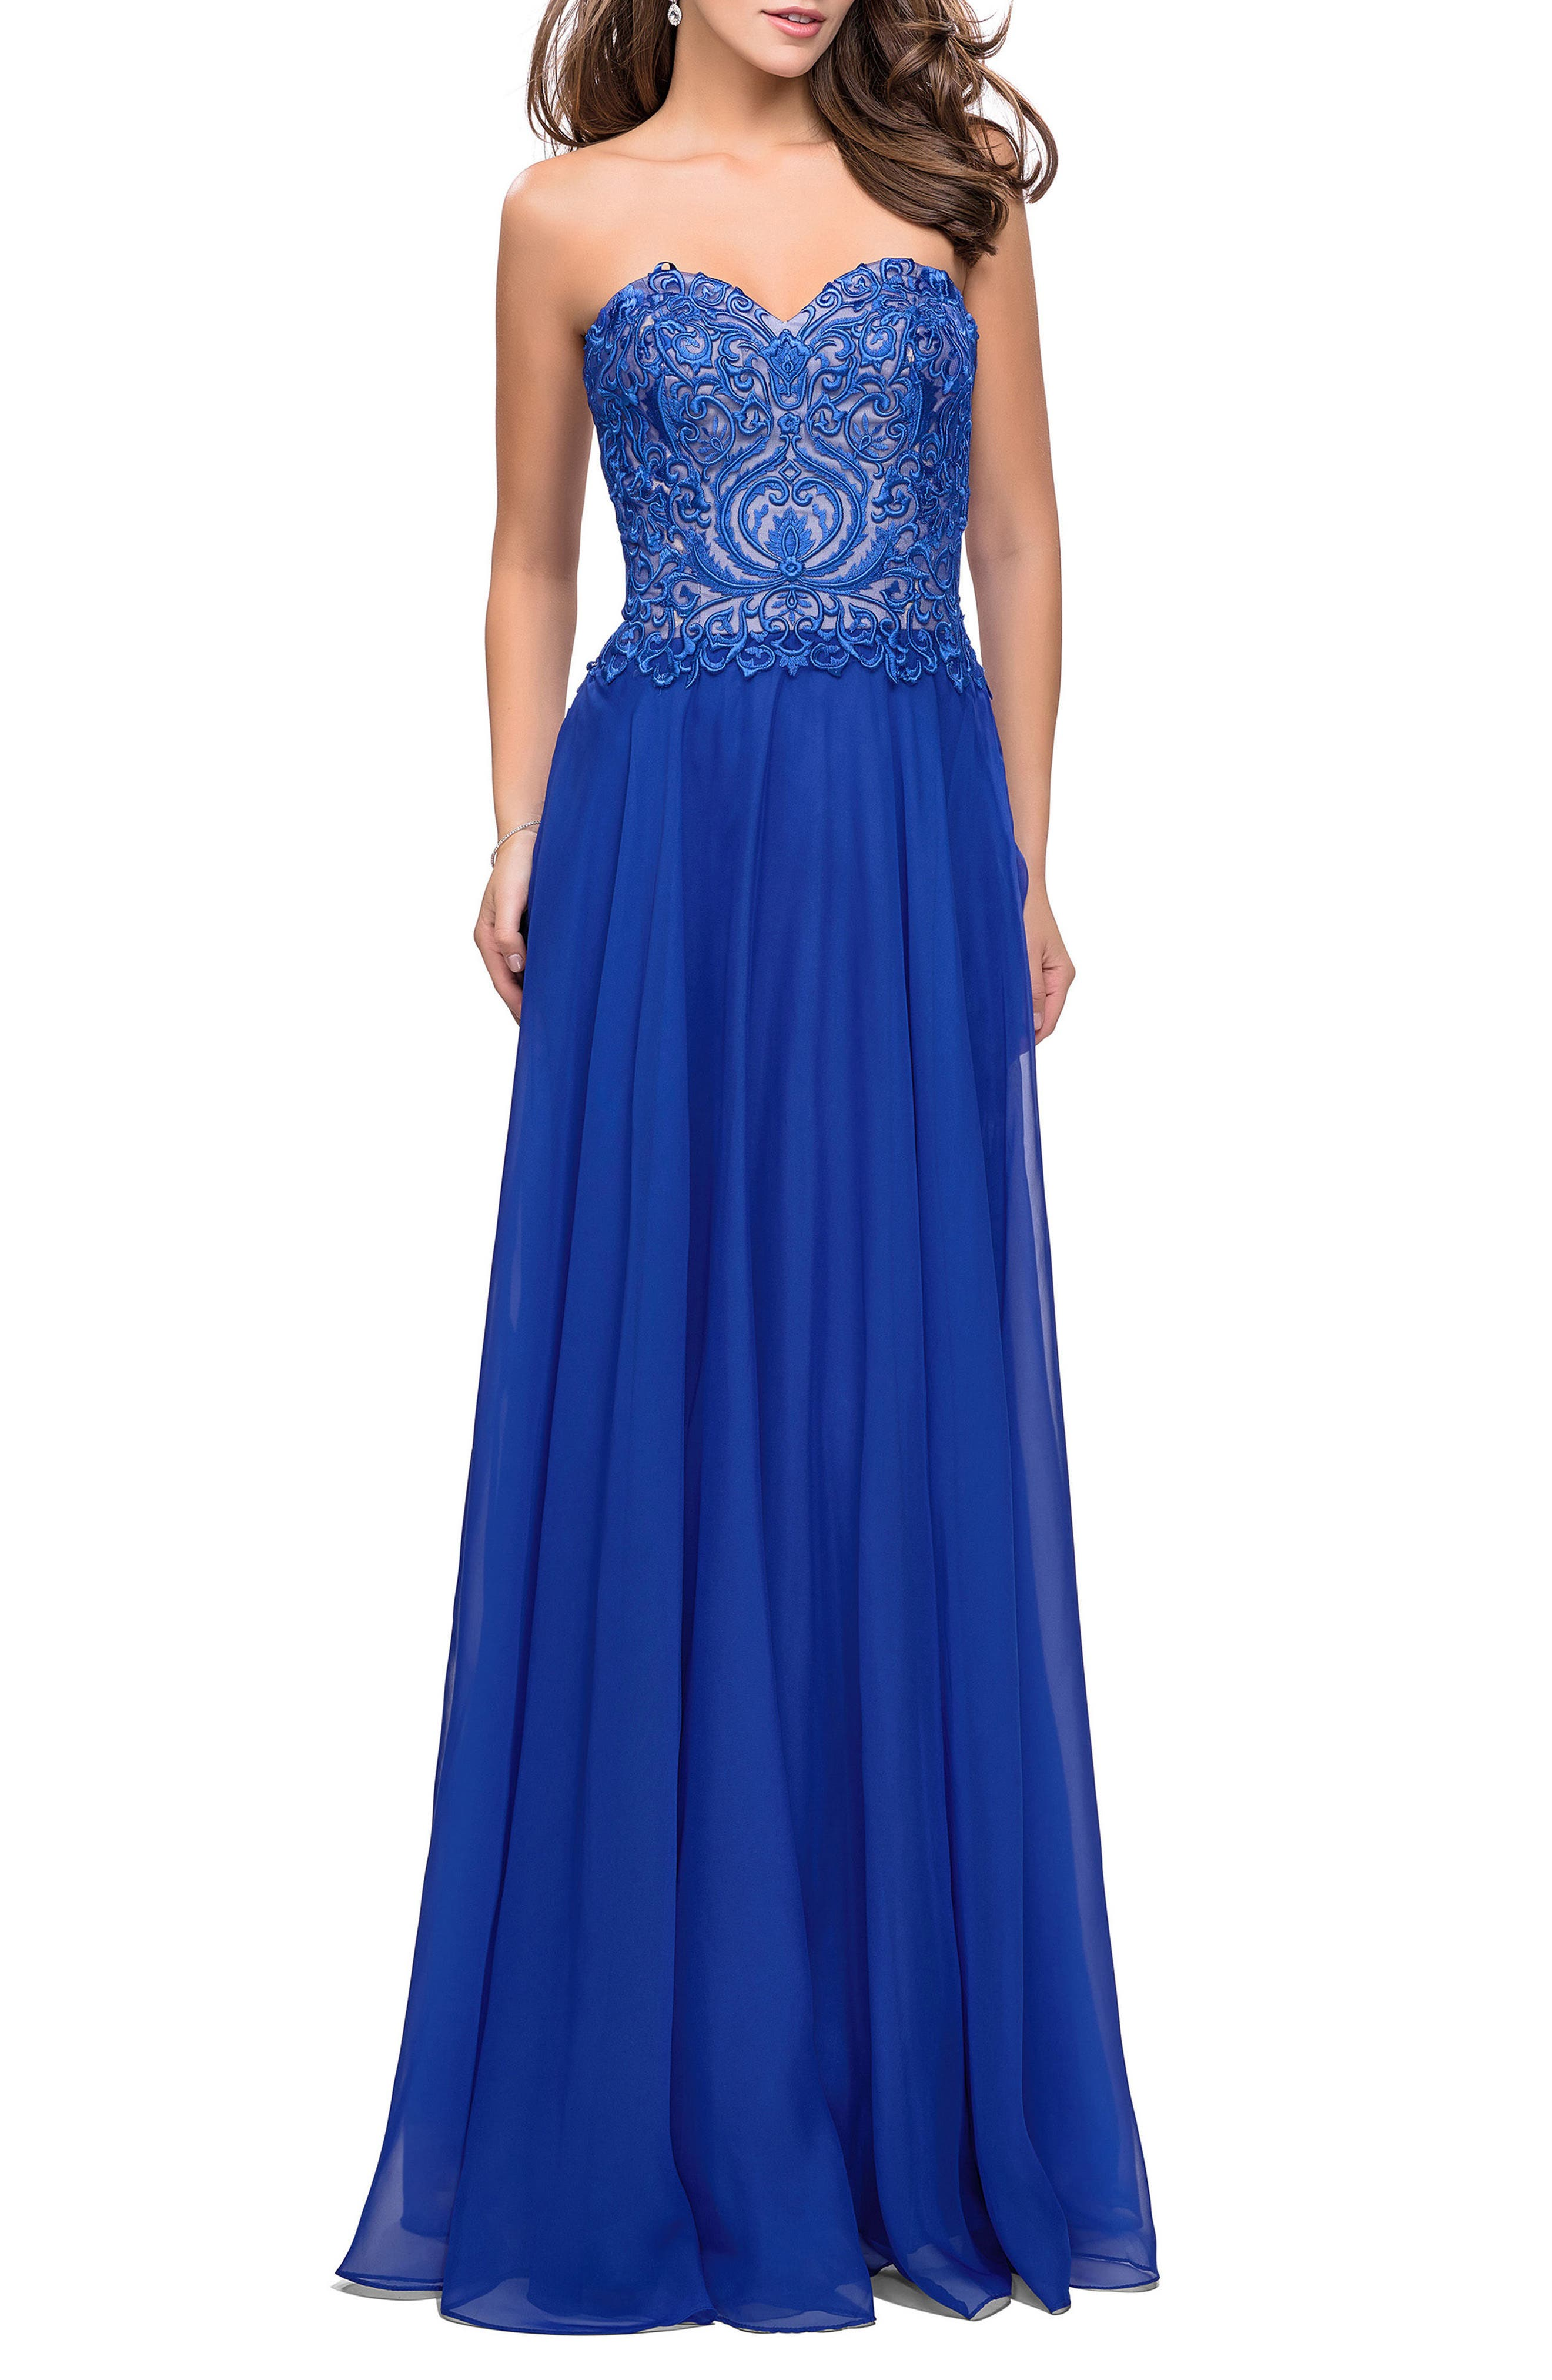 Strapless Chiffon Gown,                         Main,                         color, 402